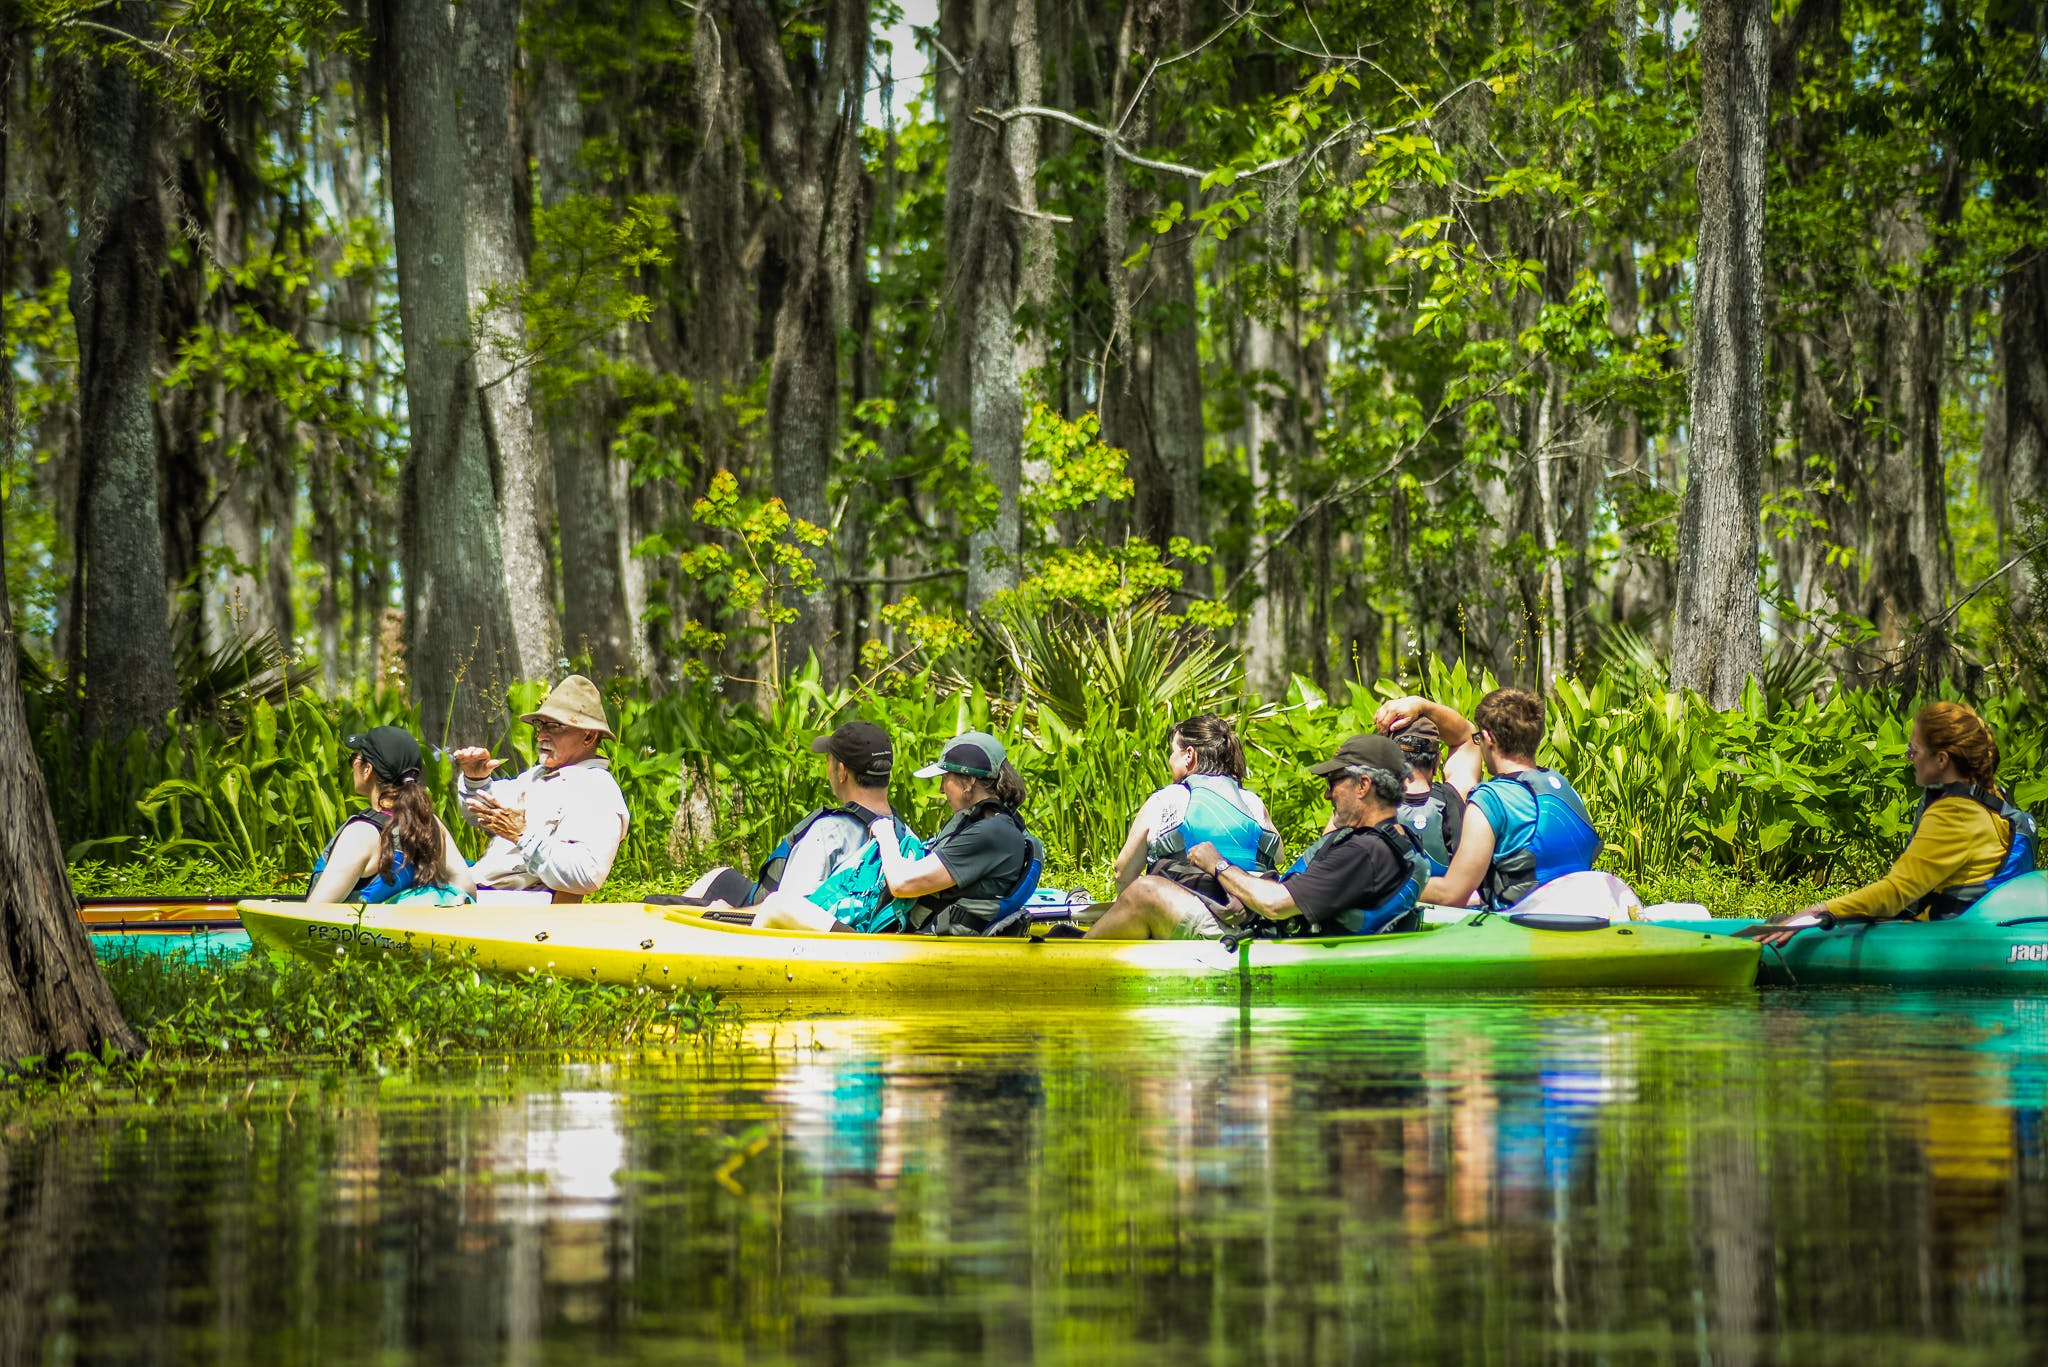 kayak, kayak tour, kayak swamp tour, new orleans, new orleans swamp tour